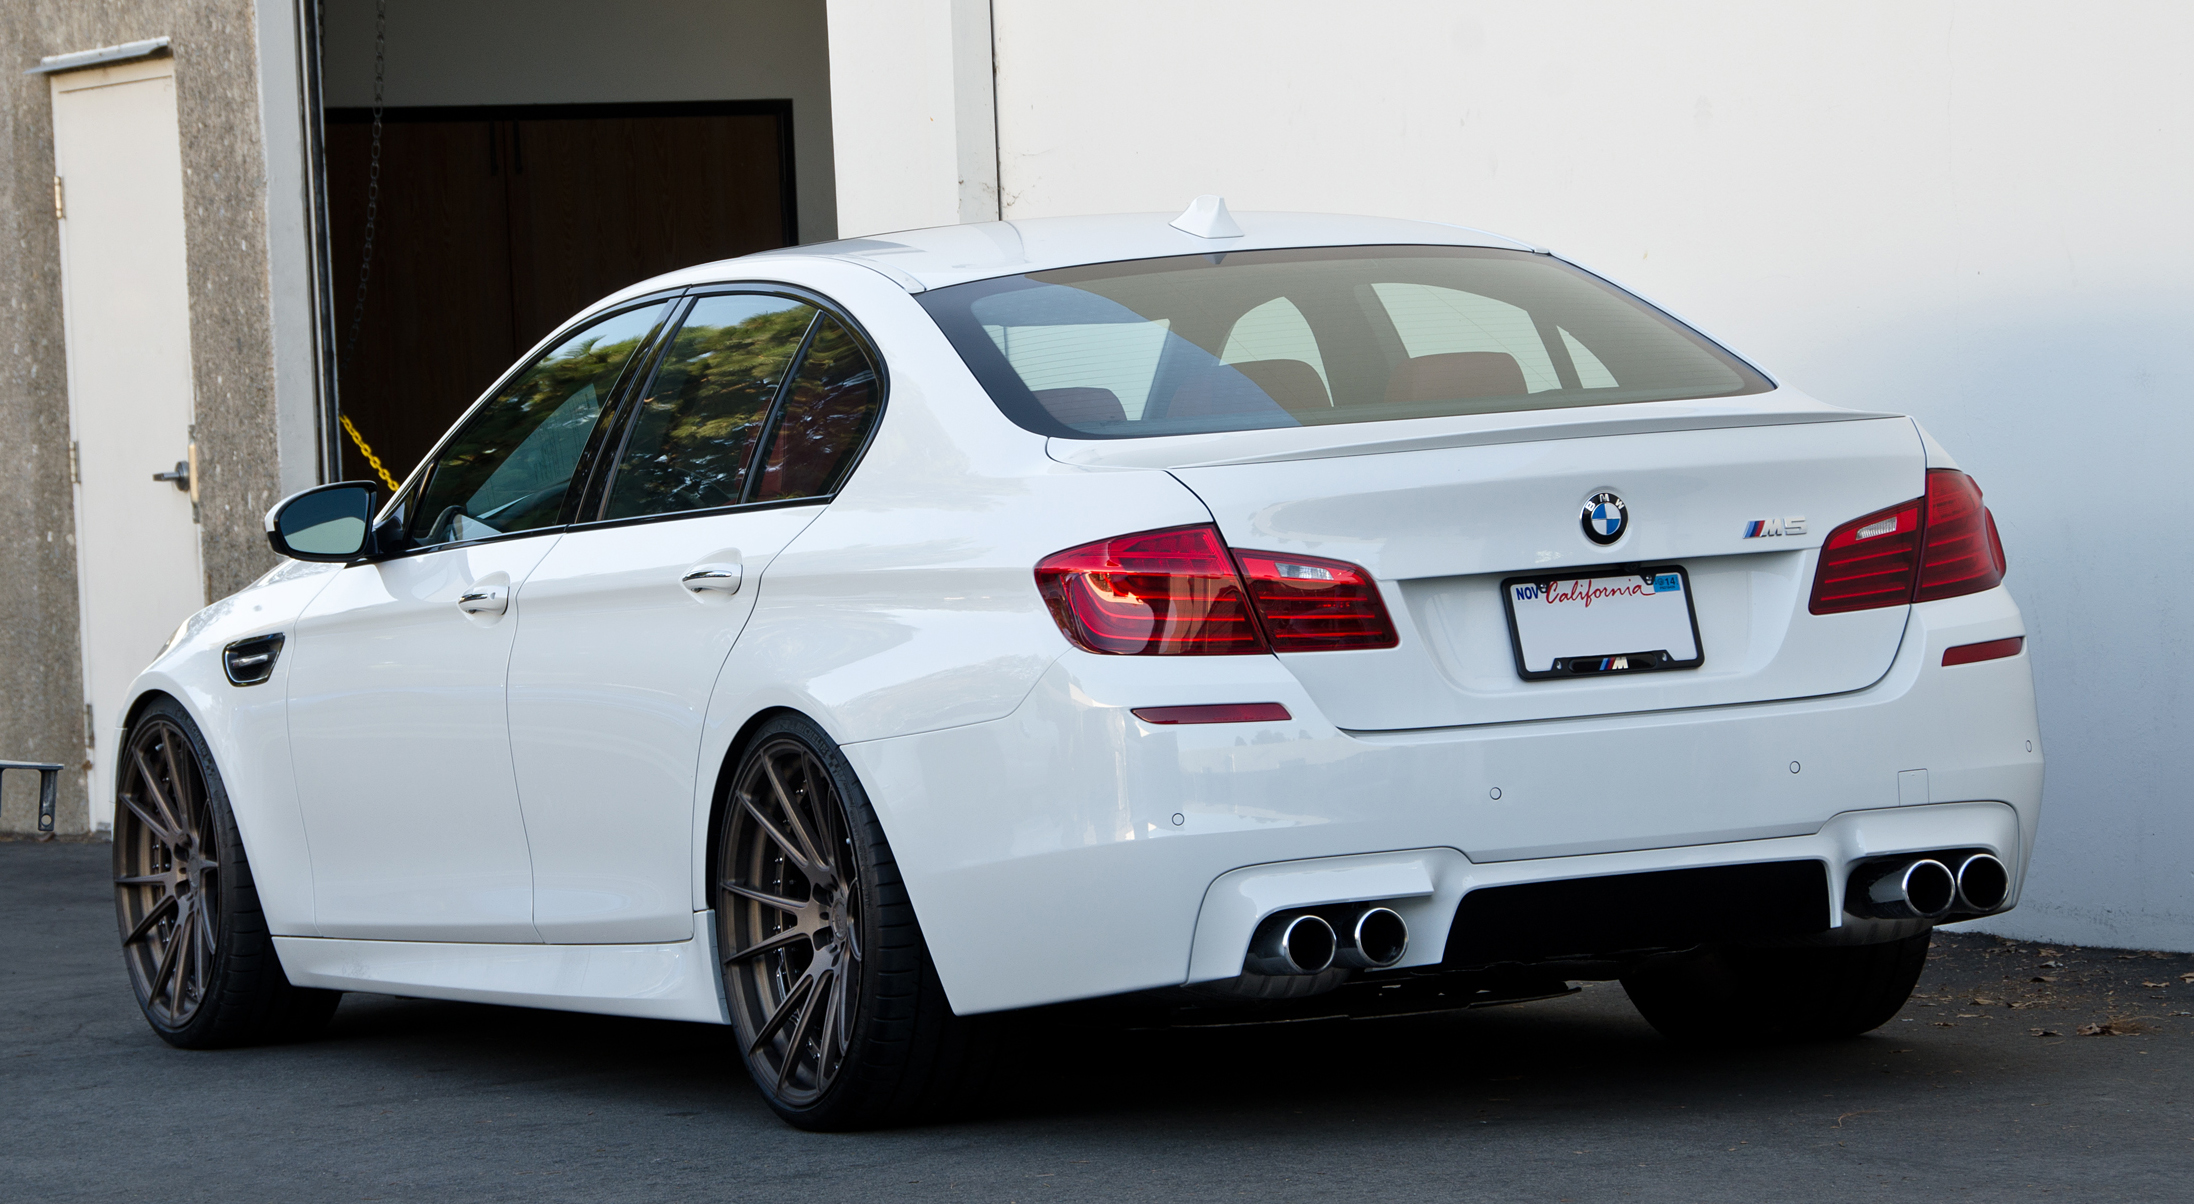 BMW-F10-M5-Gets-New-Suspension-And-Wheels-9.jpg